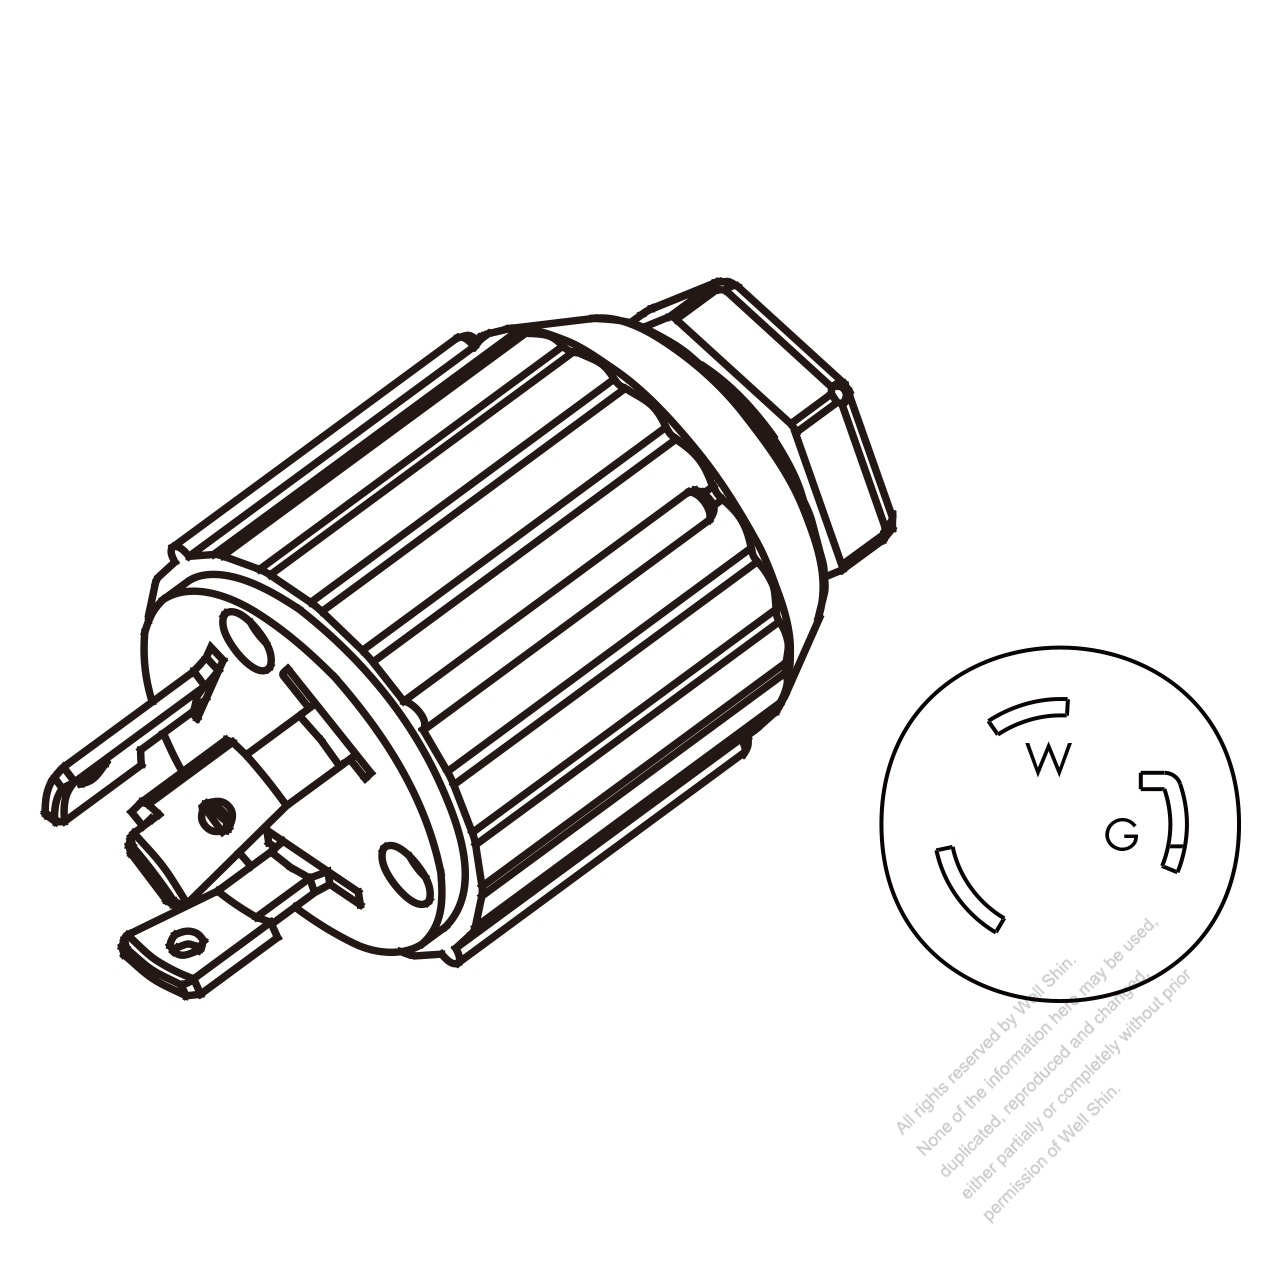 Nema 6 30p Receptacle Wiring Diagram. Parts. Wiring